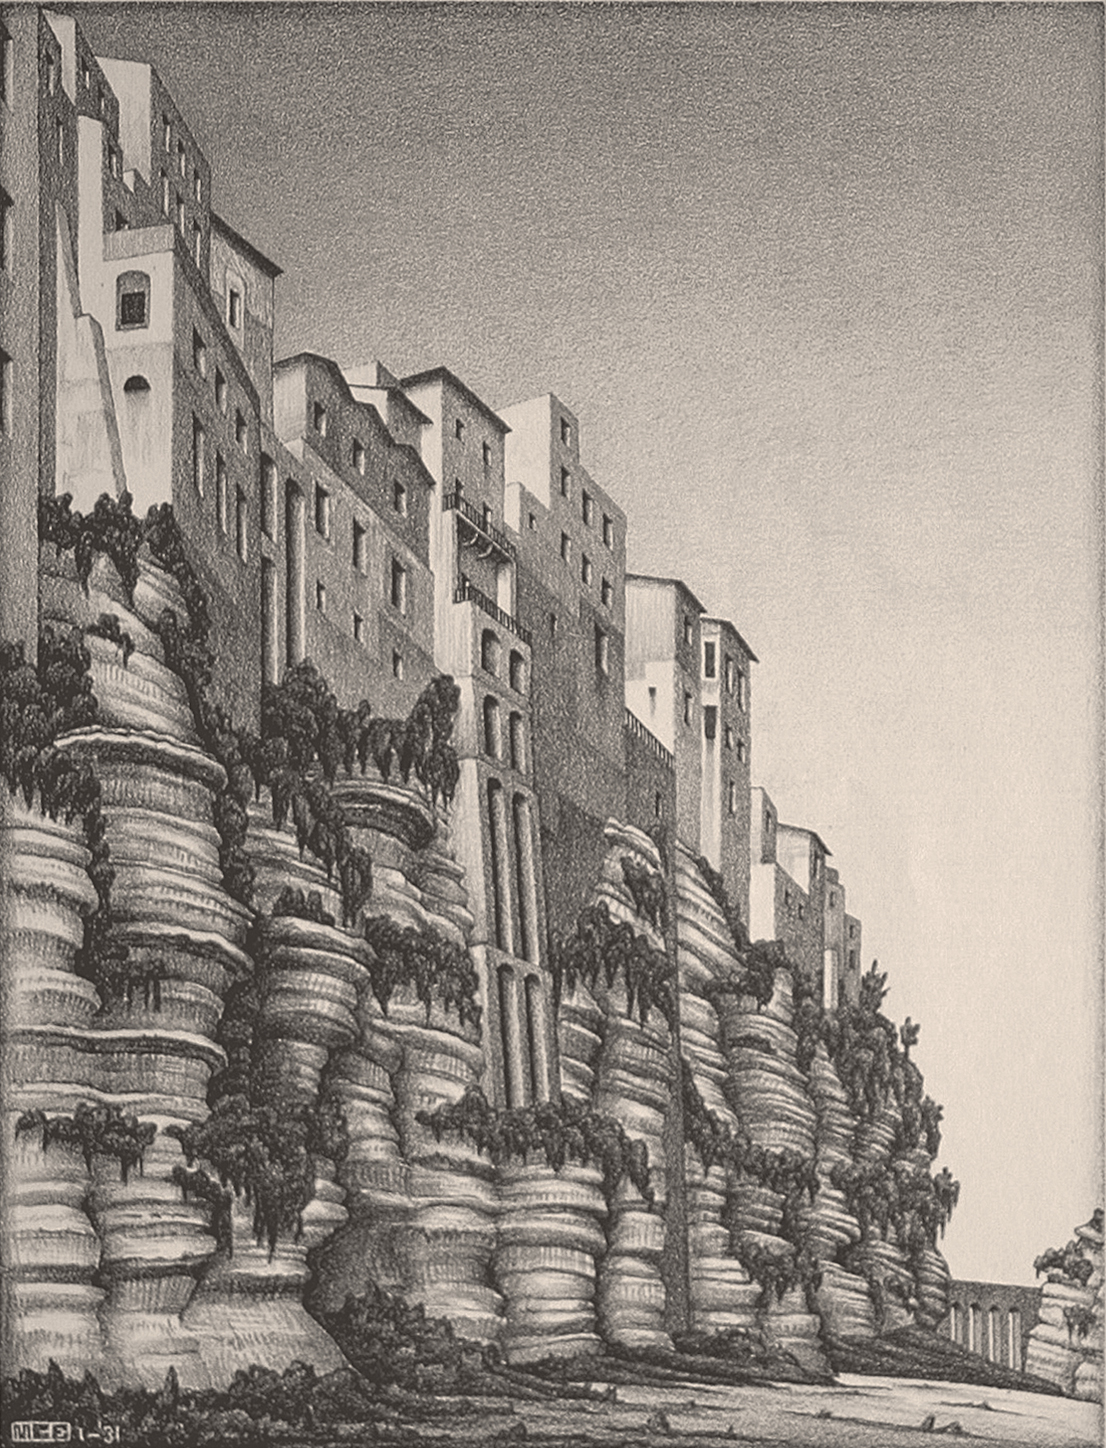 Maurits Cornelis Escher Tropea, Calabria 1931 litografia 313 x 235 mm Collezione Federico Giudiceandrea All M.C. Escher works © 2014 The M.C. Escher Company. All rights reserved www.mcescher.com